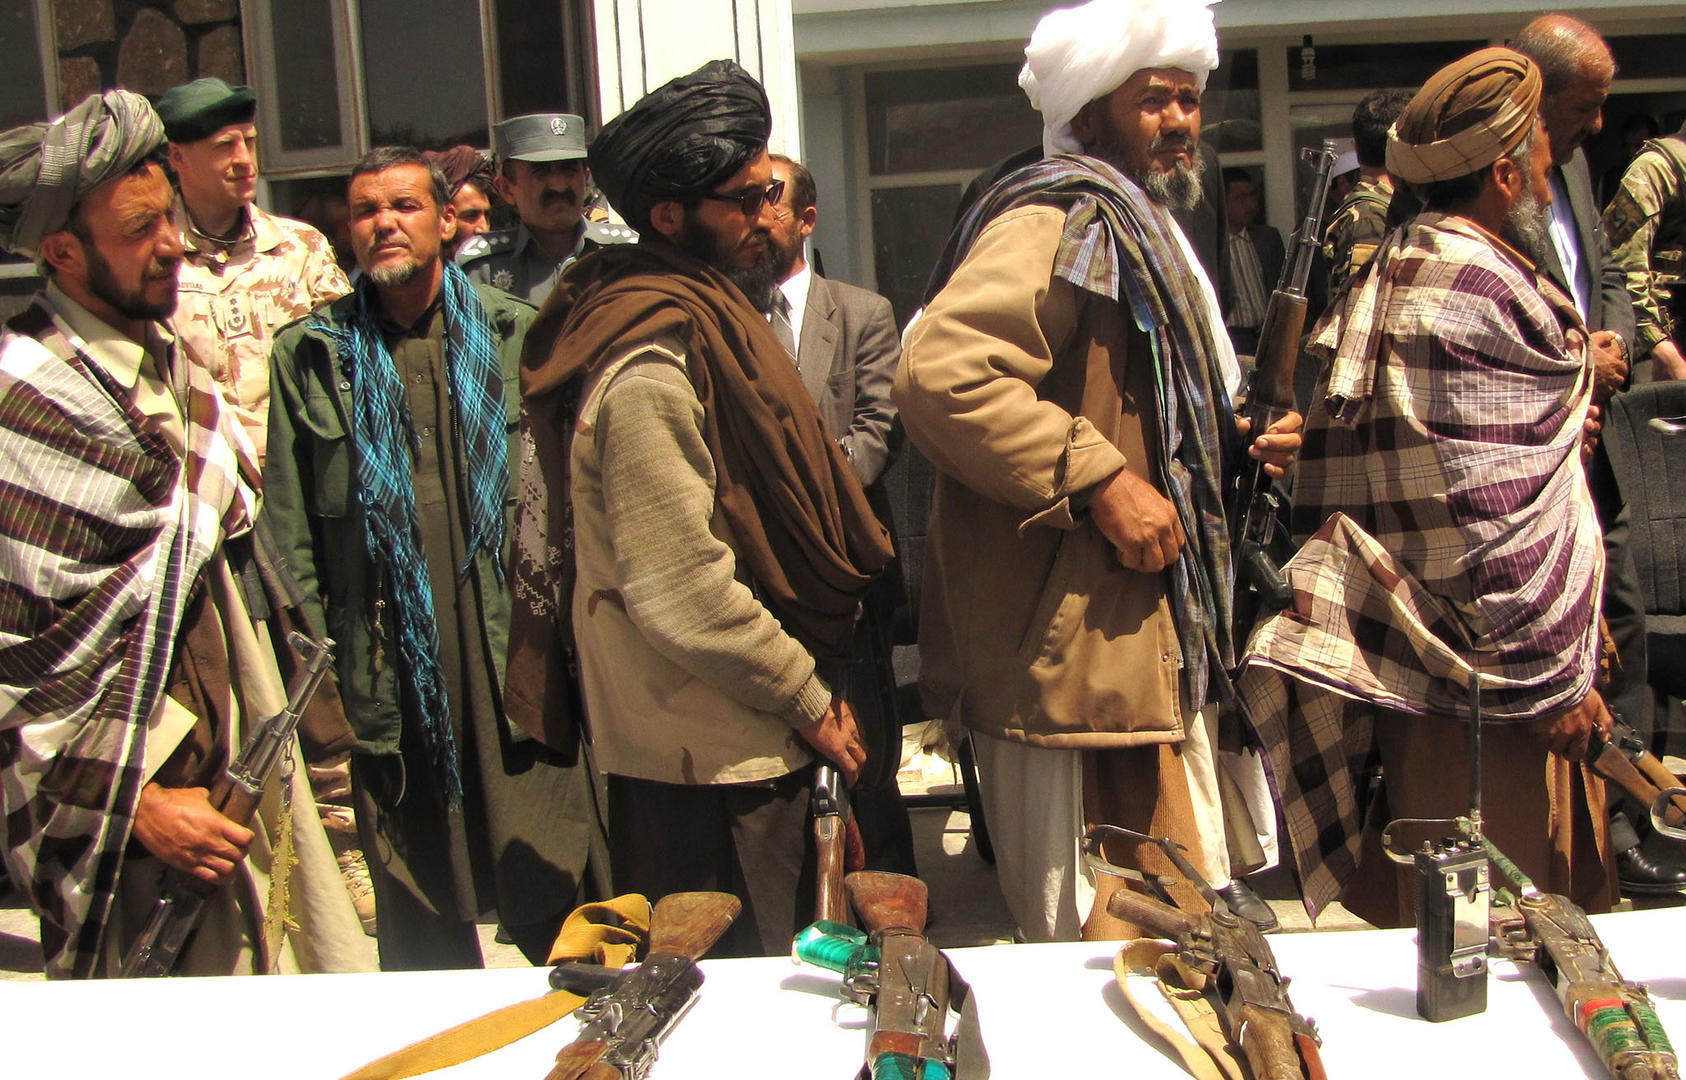 Former Taliban fighters line up to handover their rifles to the Afghan Government during a reintegration ceremony, May 2012. (Department of Defense/Lt. j. g. Joe Painter)